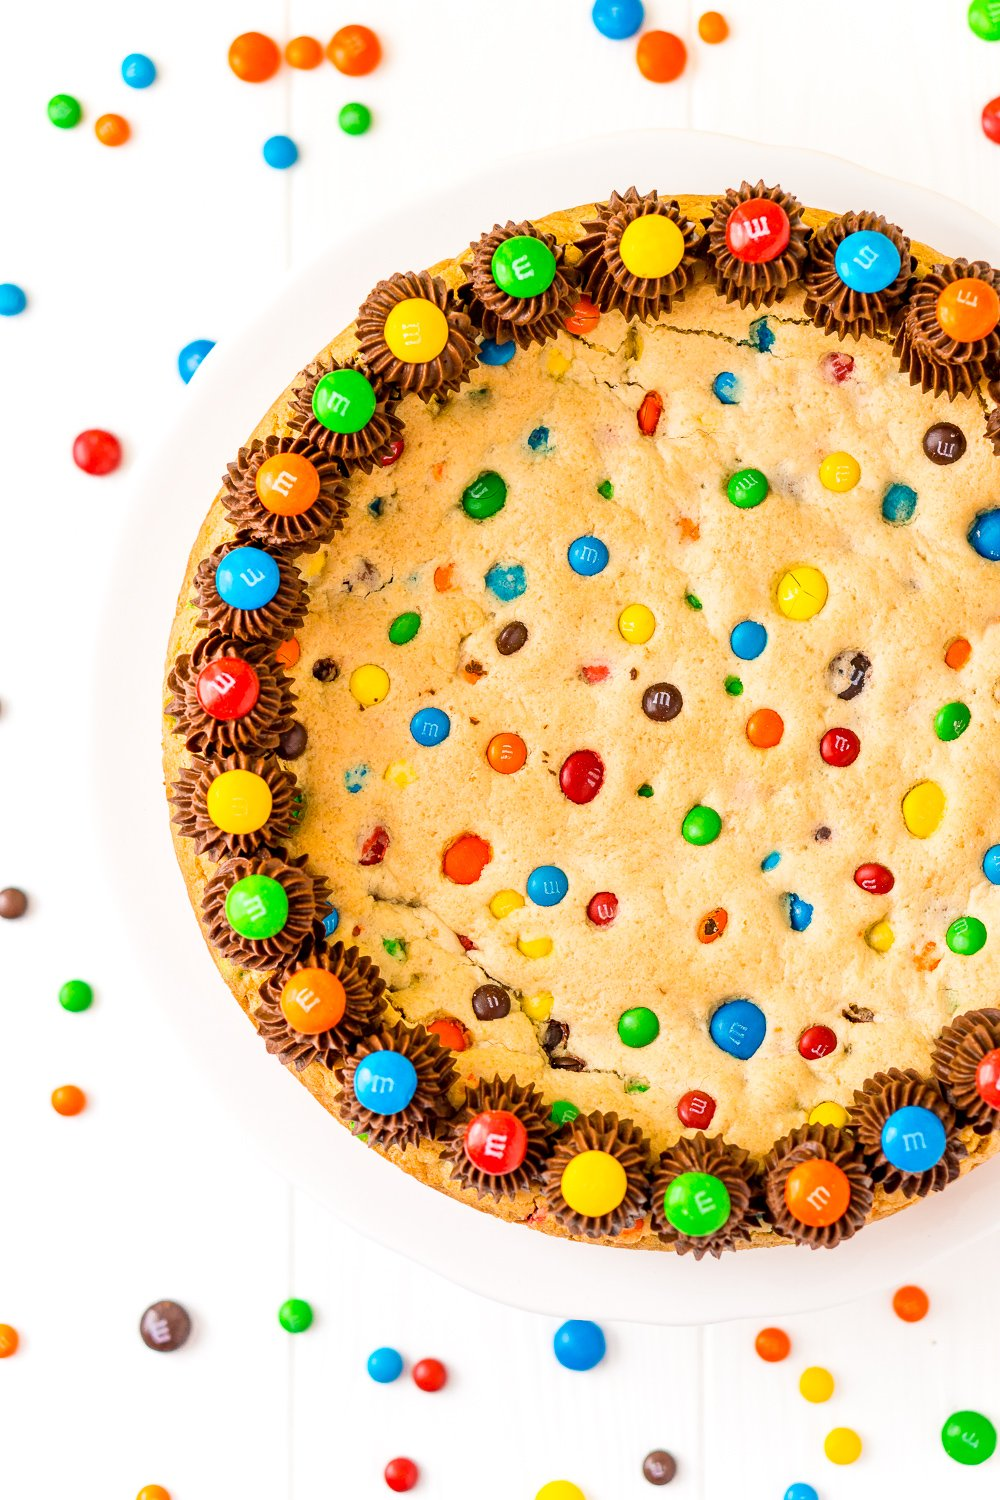 Overhead of M&M's Cookie Cake on white background.